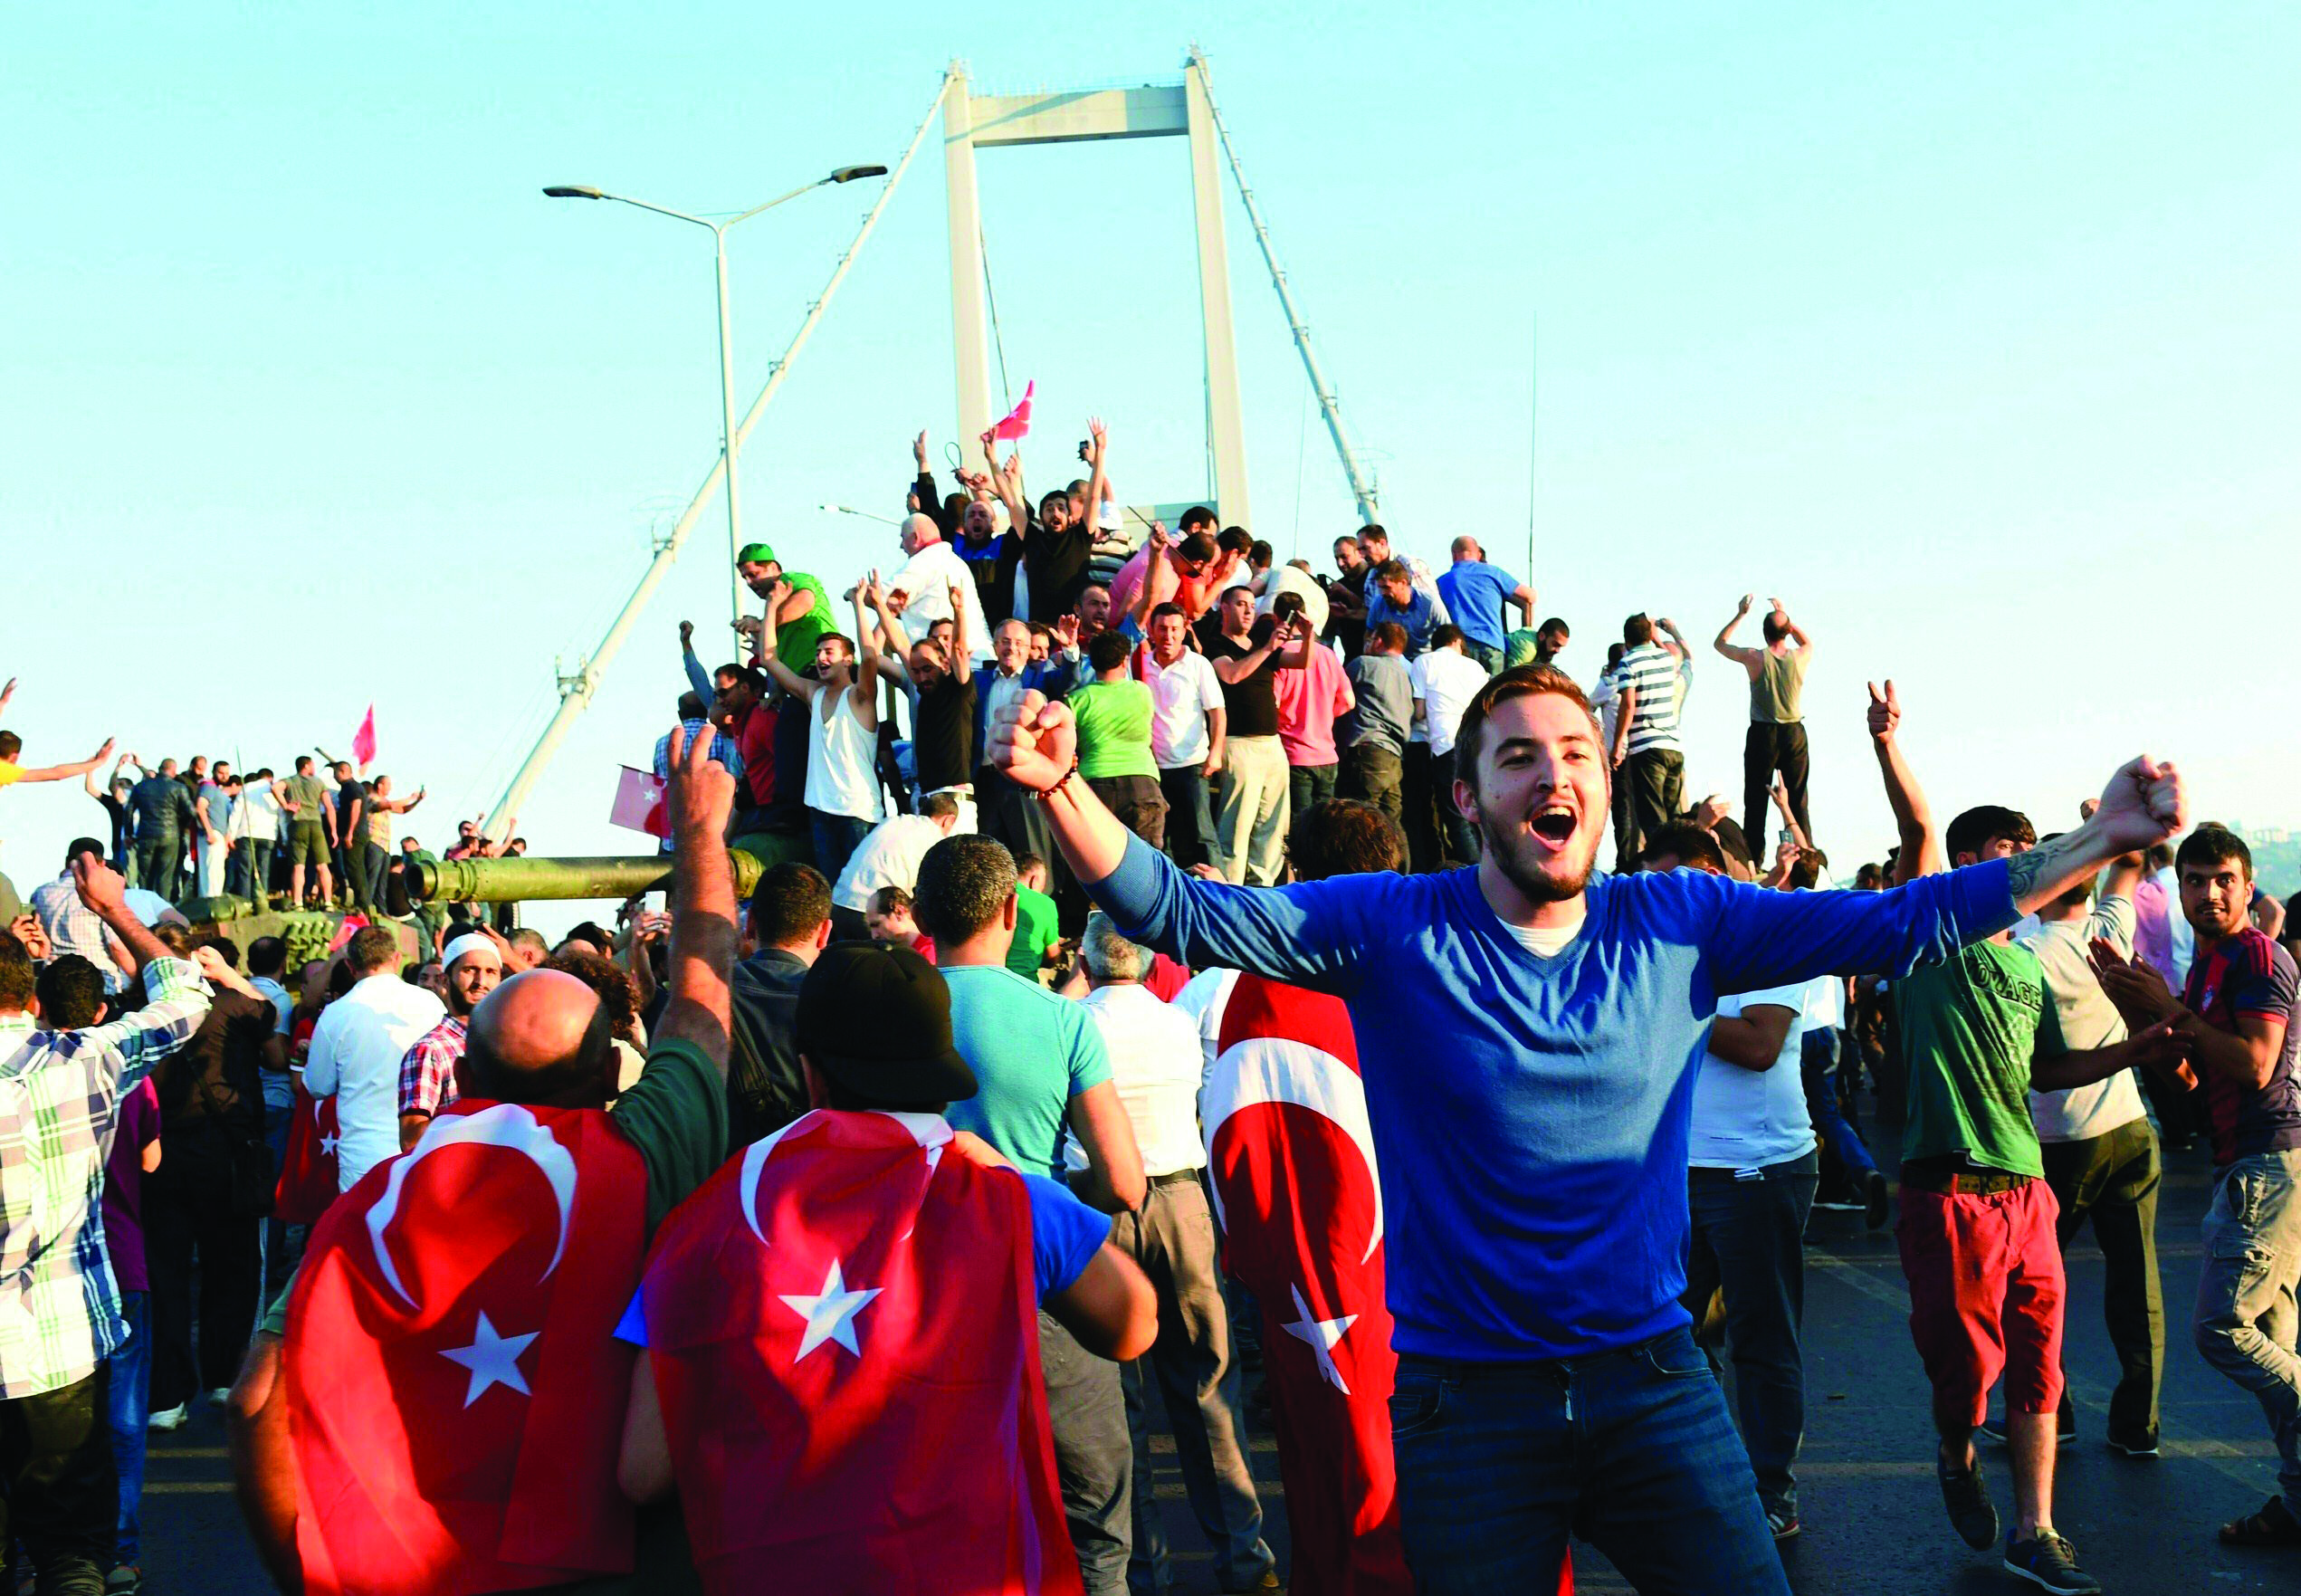 The July 15 Coup Attempt The Founding Nation Against the